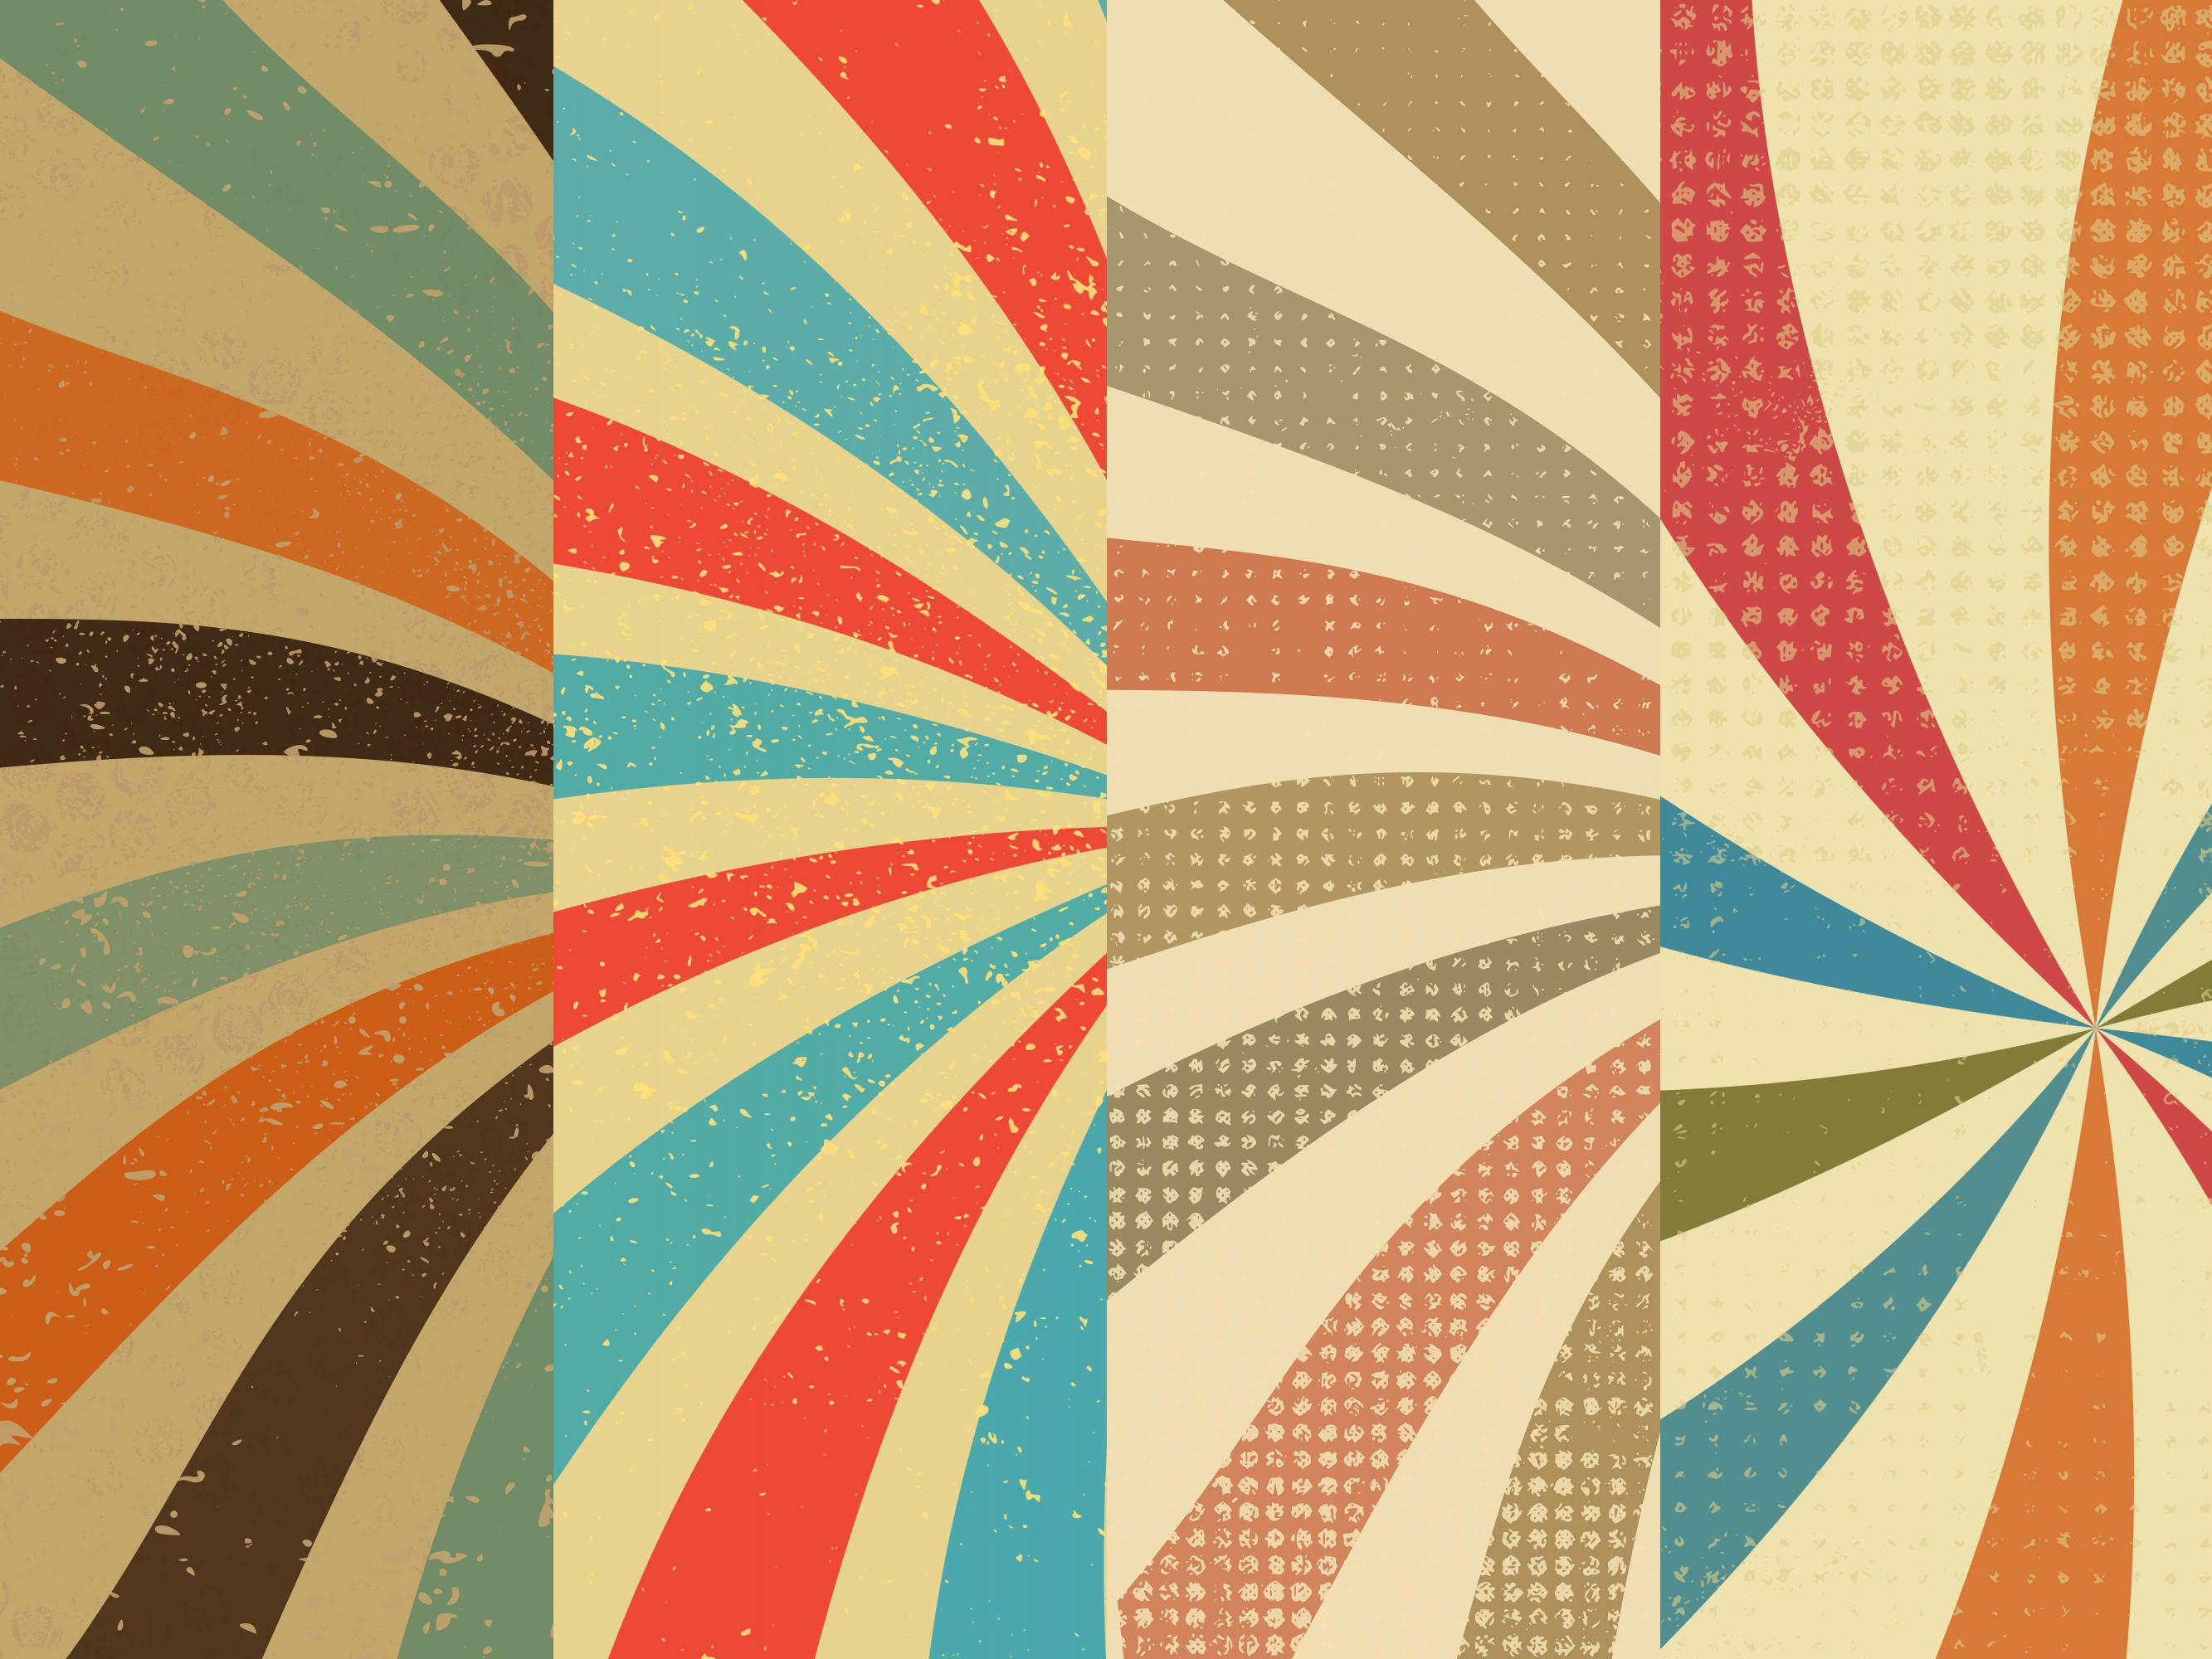 spiral-retro-background-cover.jpg